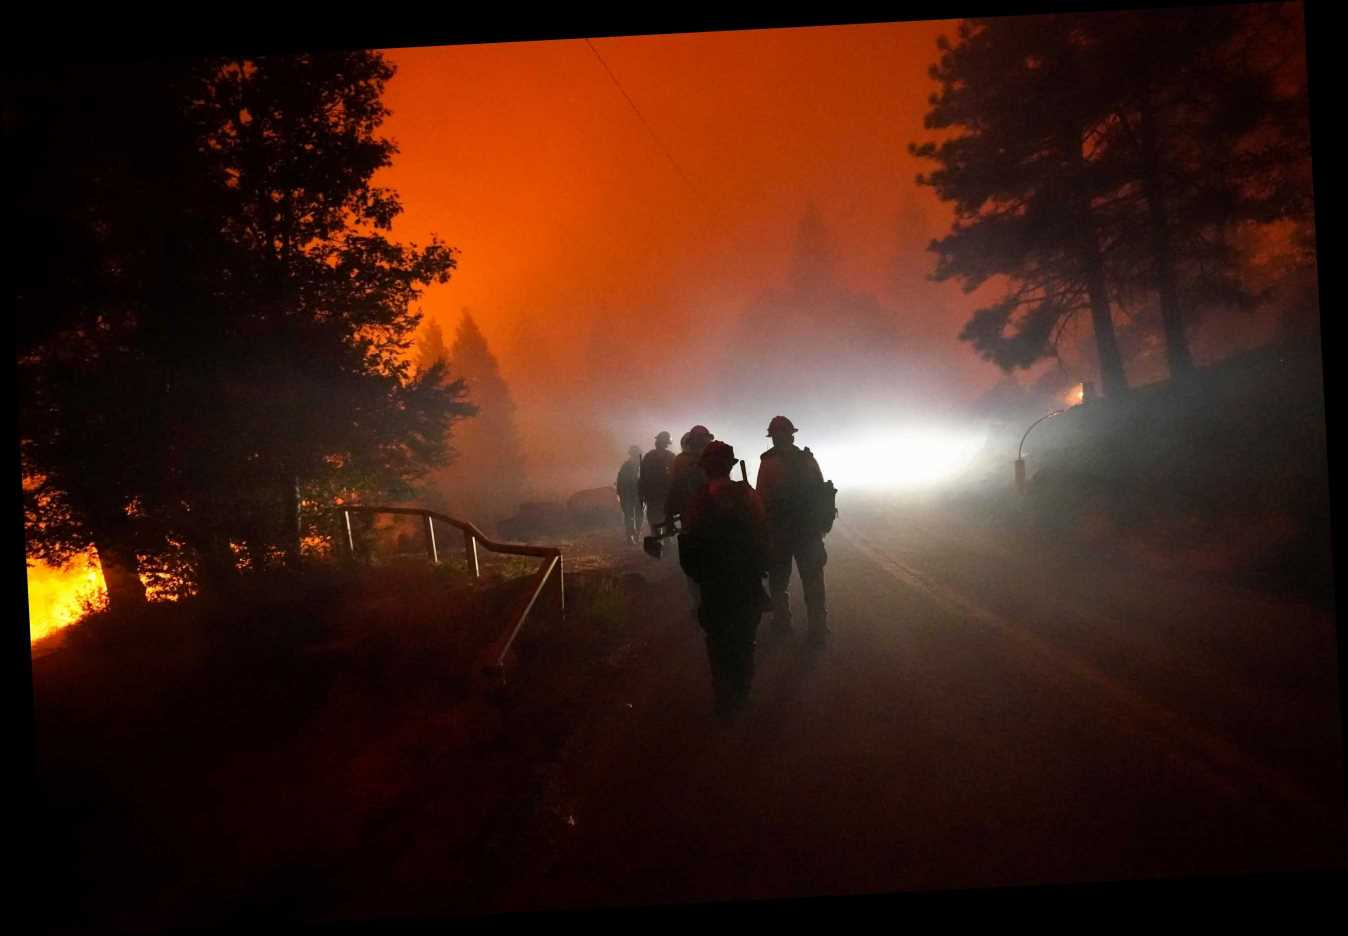 A Record 2 Million Acres Have Been Burned By California Wildfires This Year